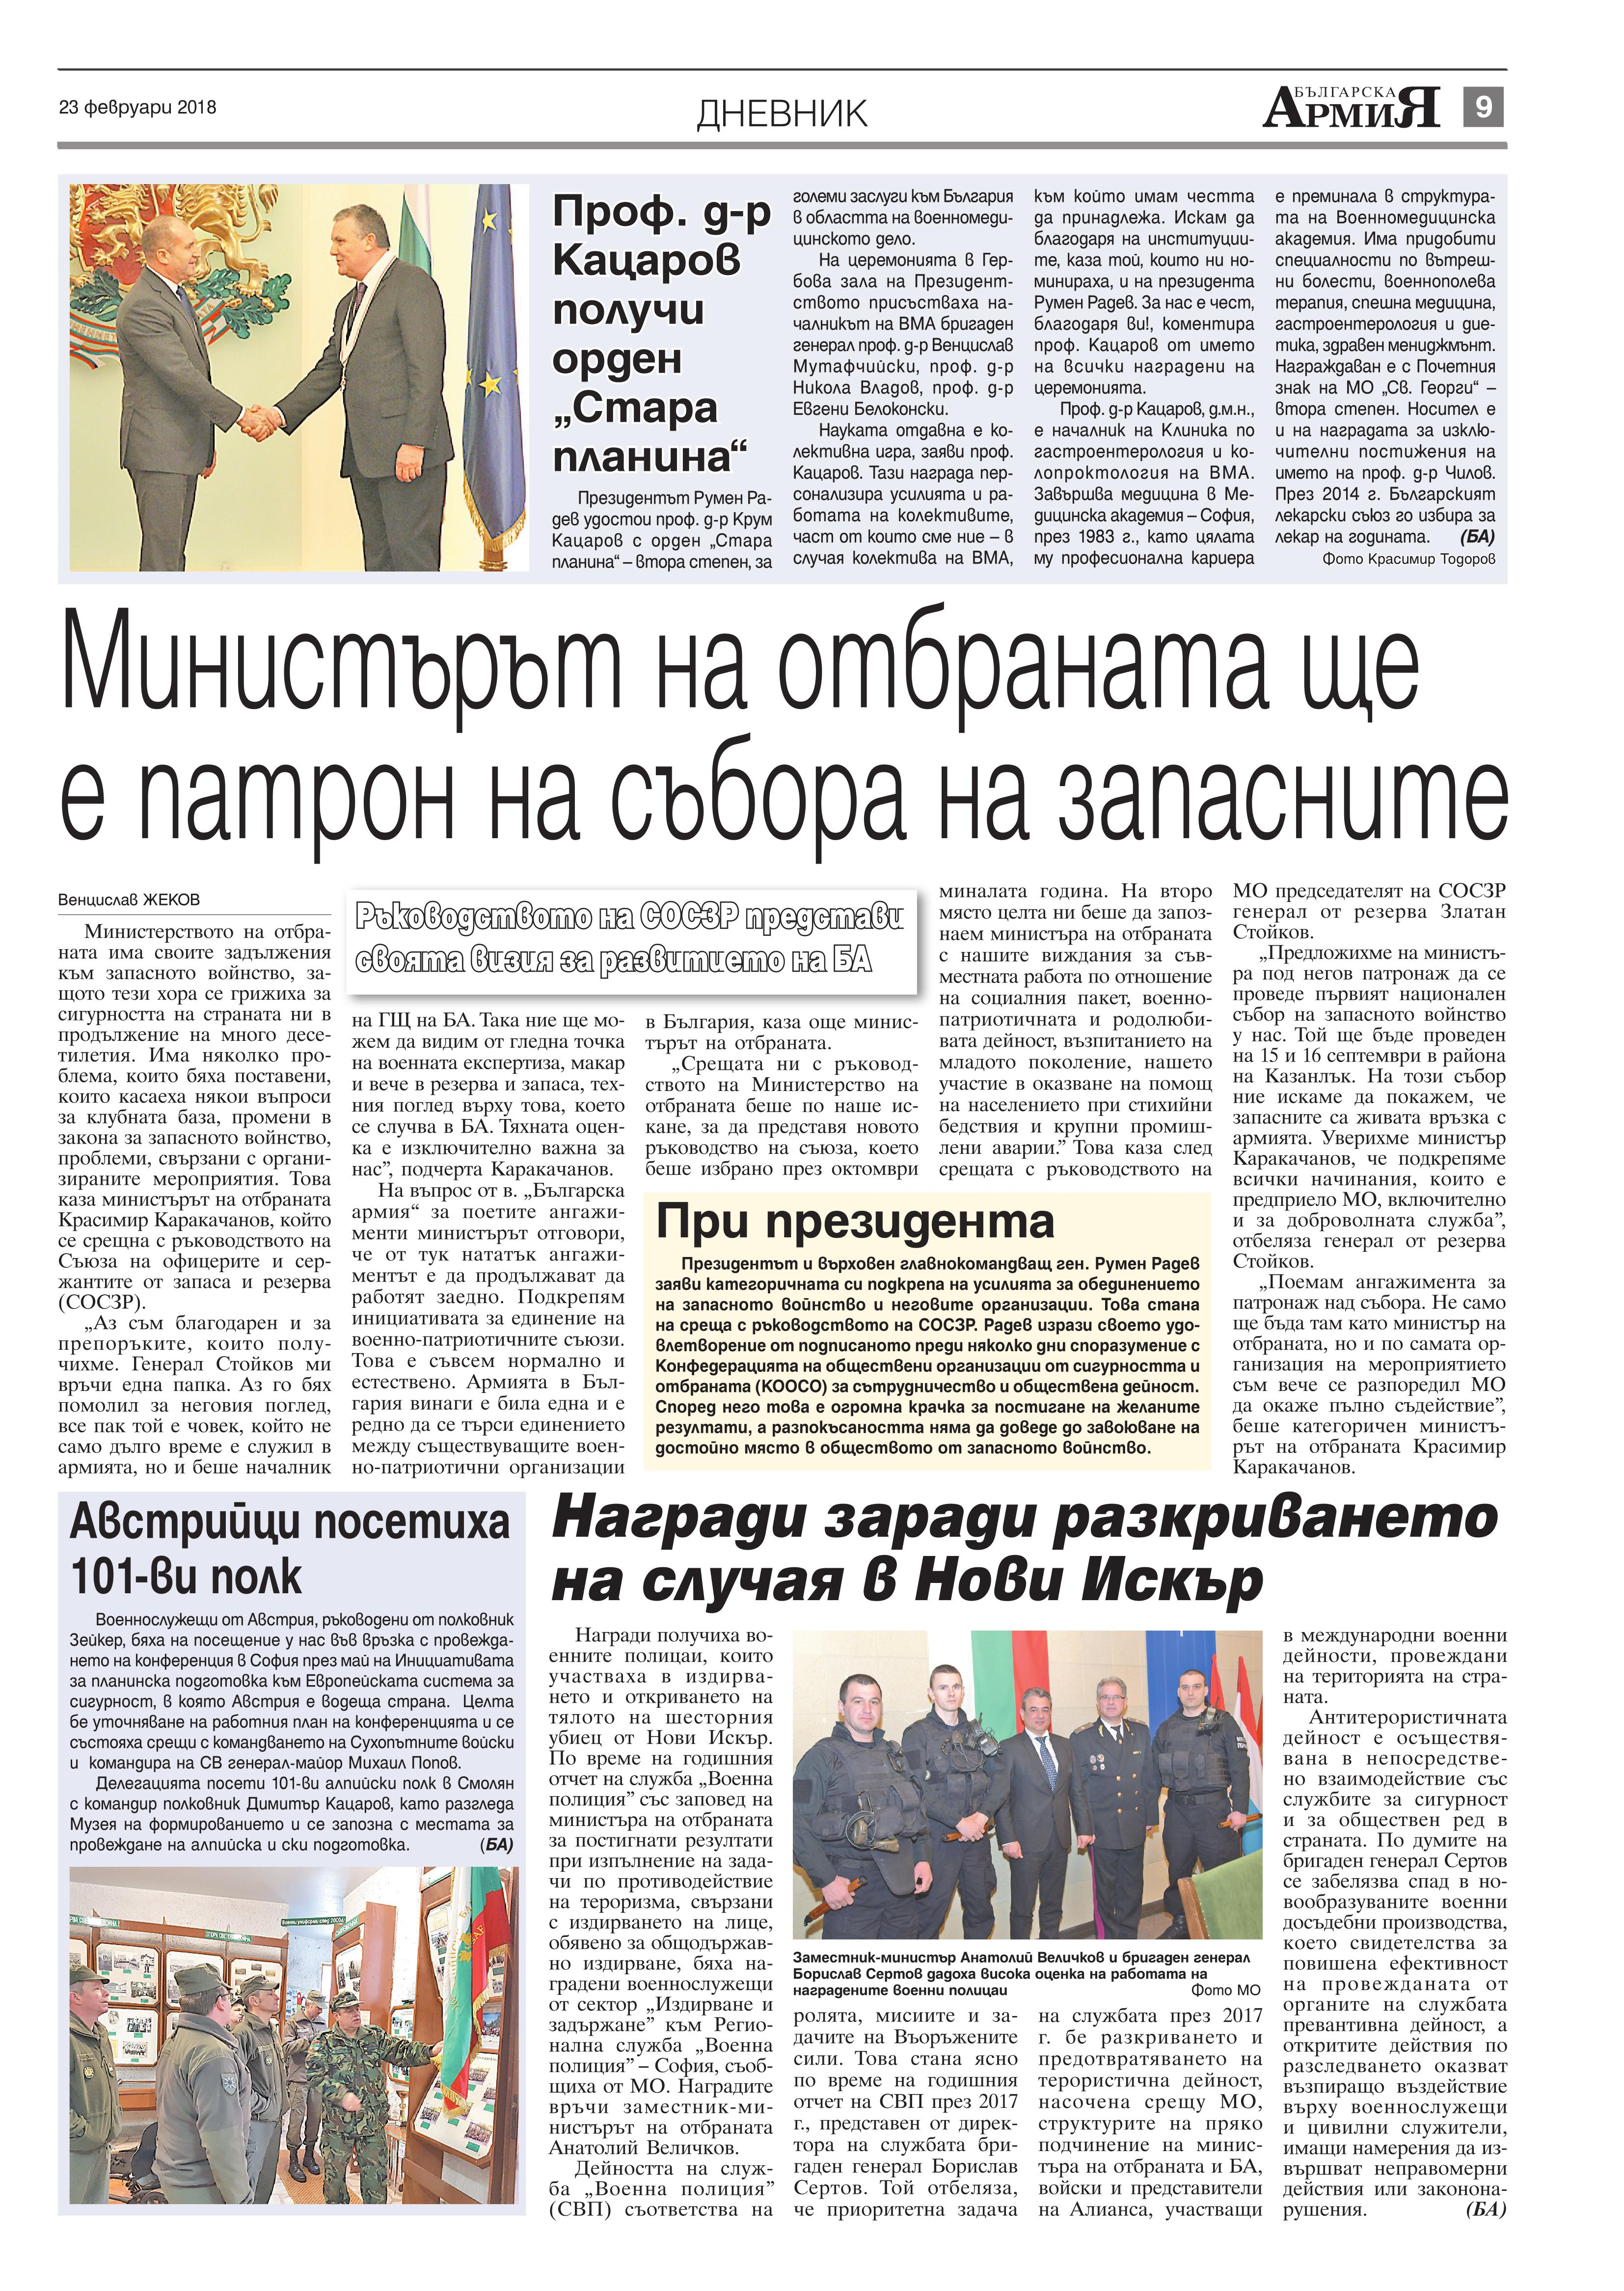 http://armymedia.bg/wp-content/uploads/2015/06/09.page1_-38.jpg